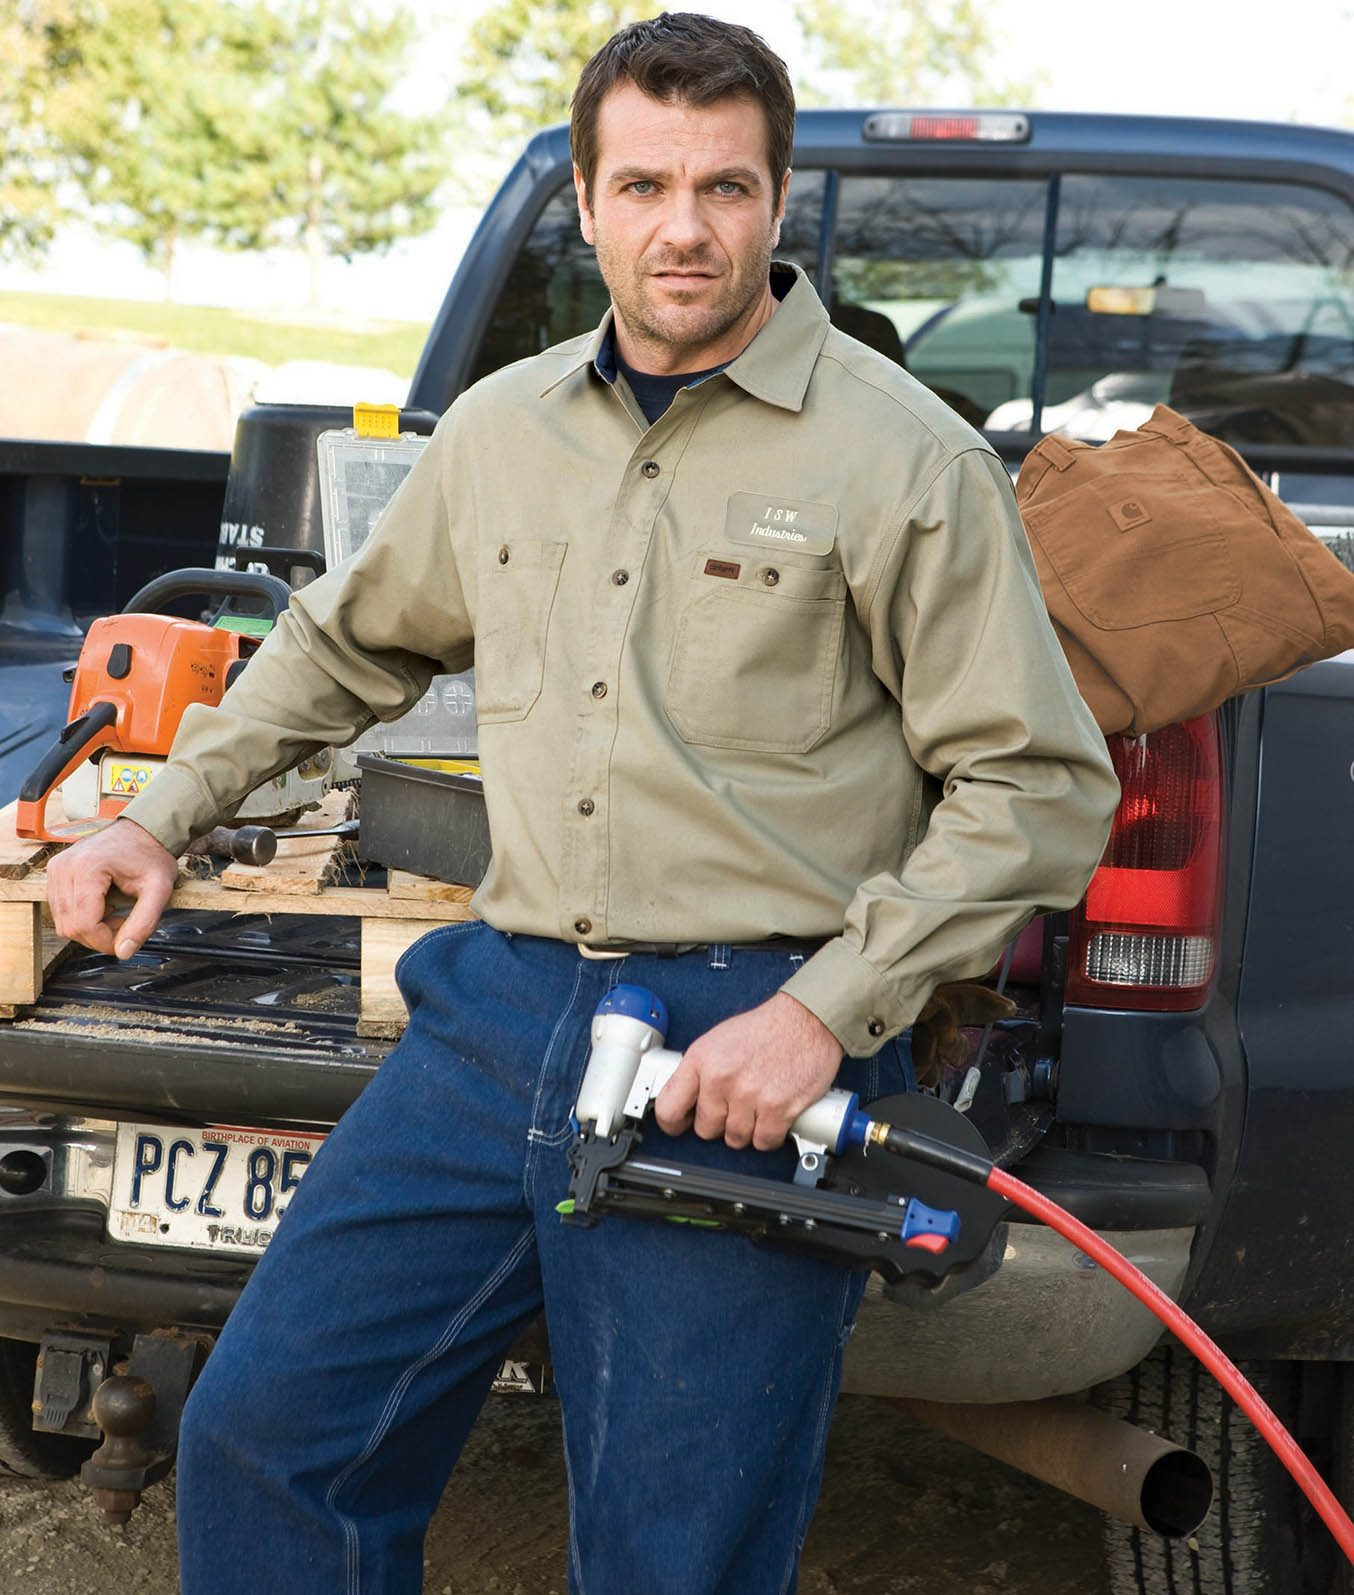 Contruction worker resting on a pickup truck tailgate with a nail gun in hand in a light brown Carhartt shirt and blue jeans